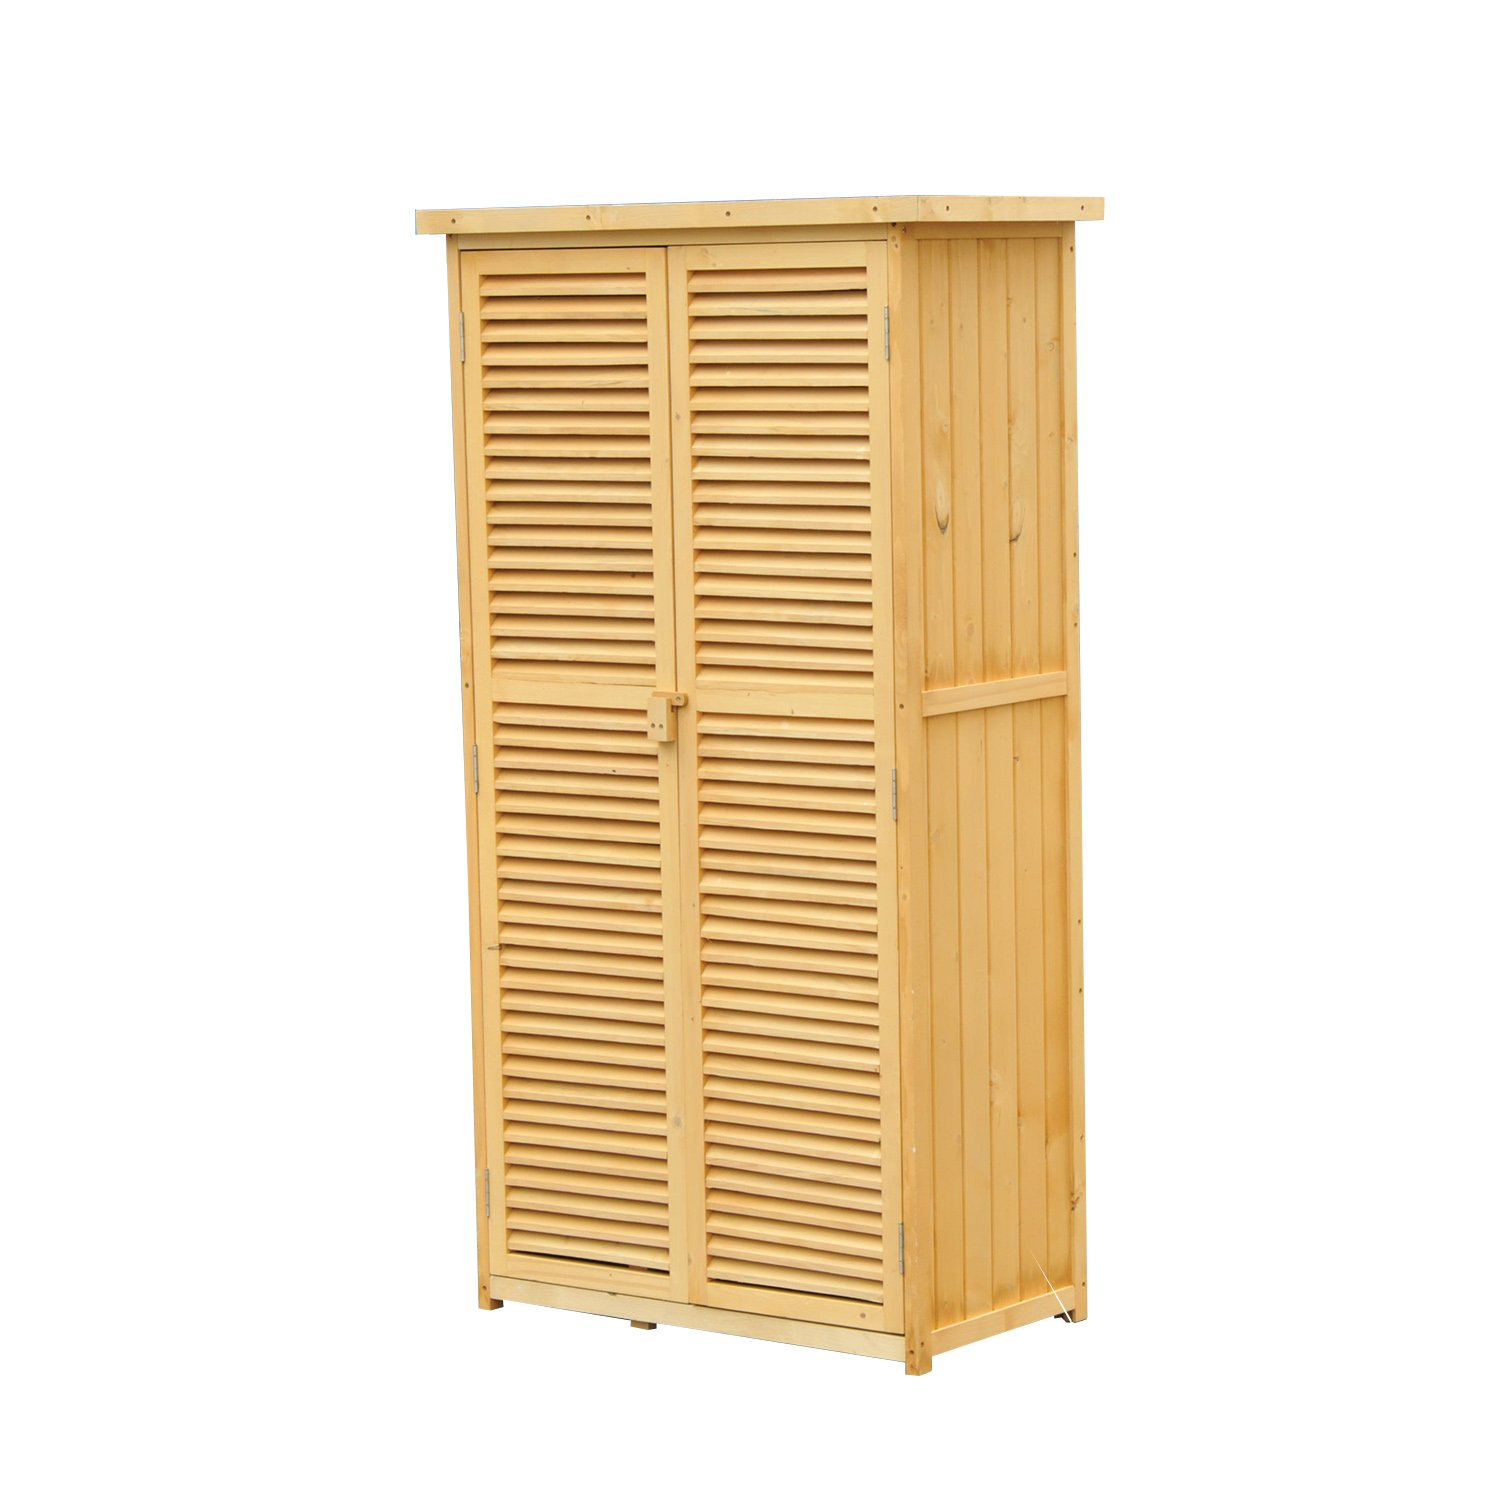 Outsunny Wooden Outdoor Garden Storage Shed